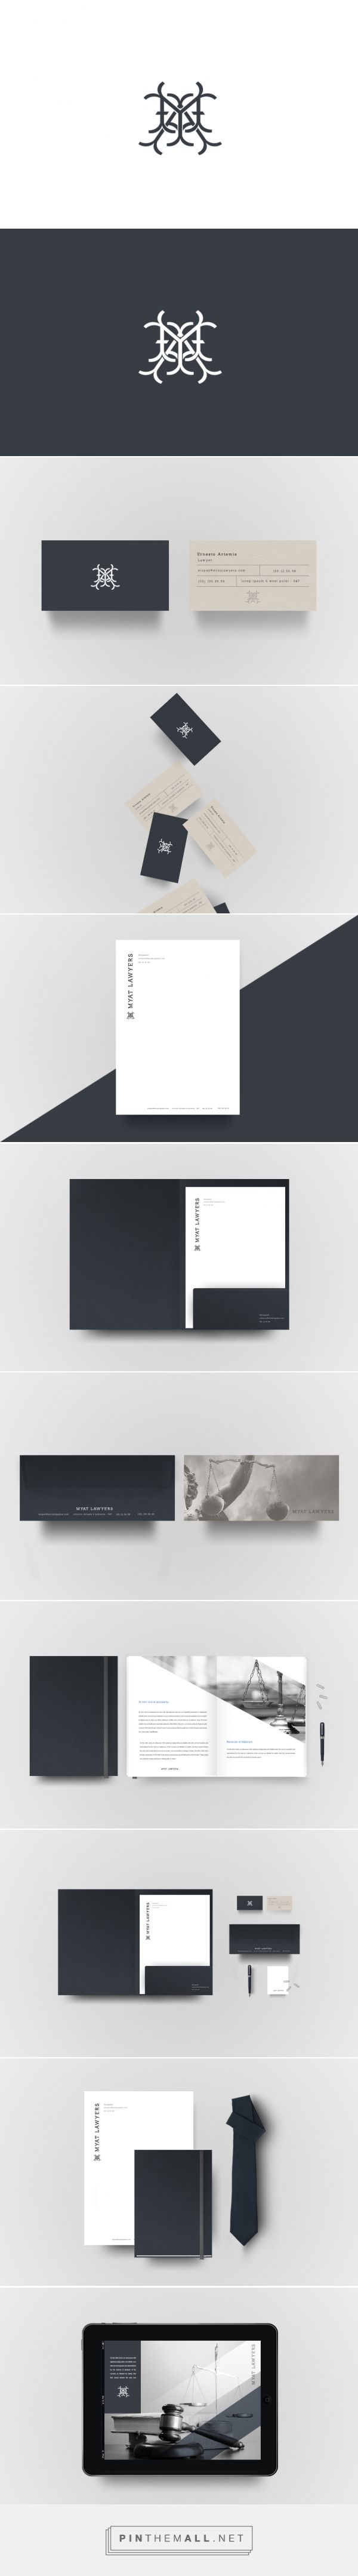 Colour therapy for digestion - Branding Myat Lawyers By Manuberlanga Monogram Branding Lawyer Https